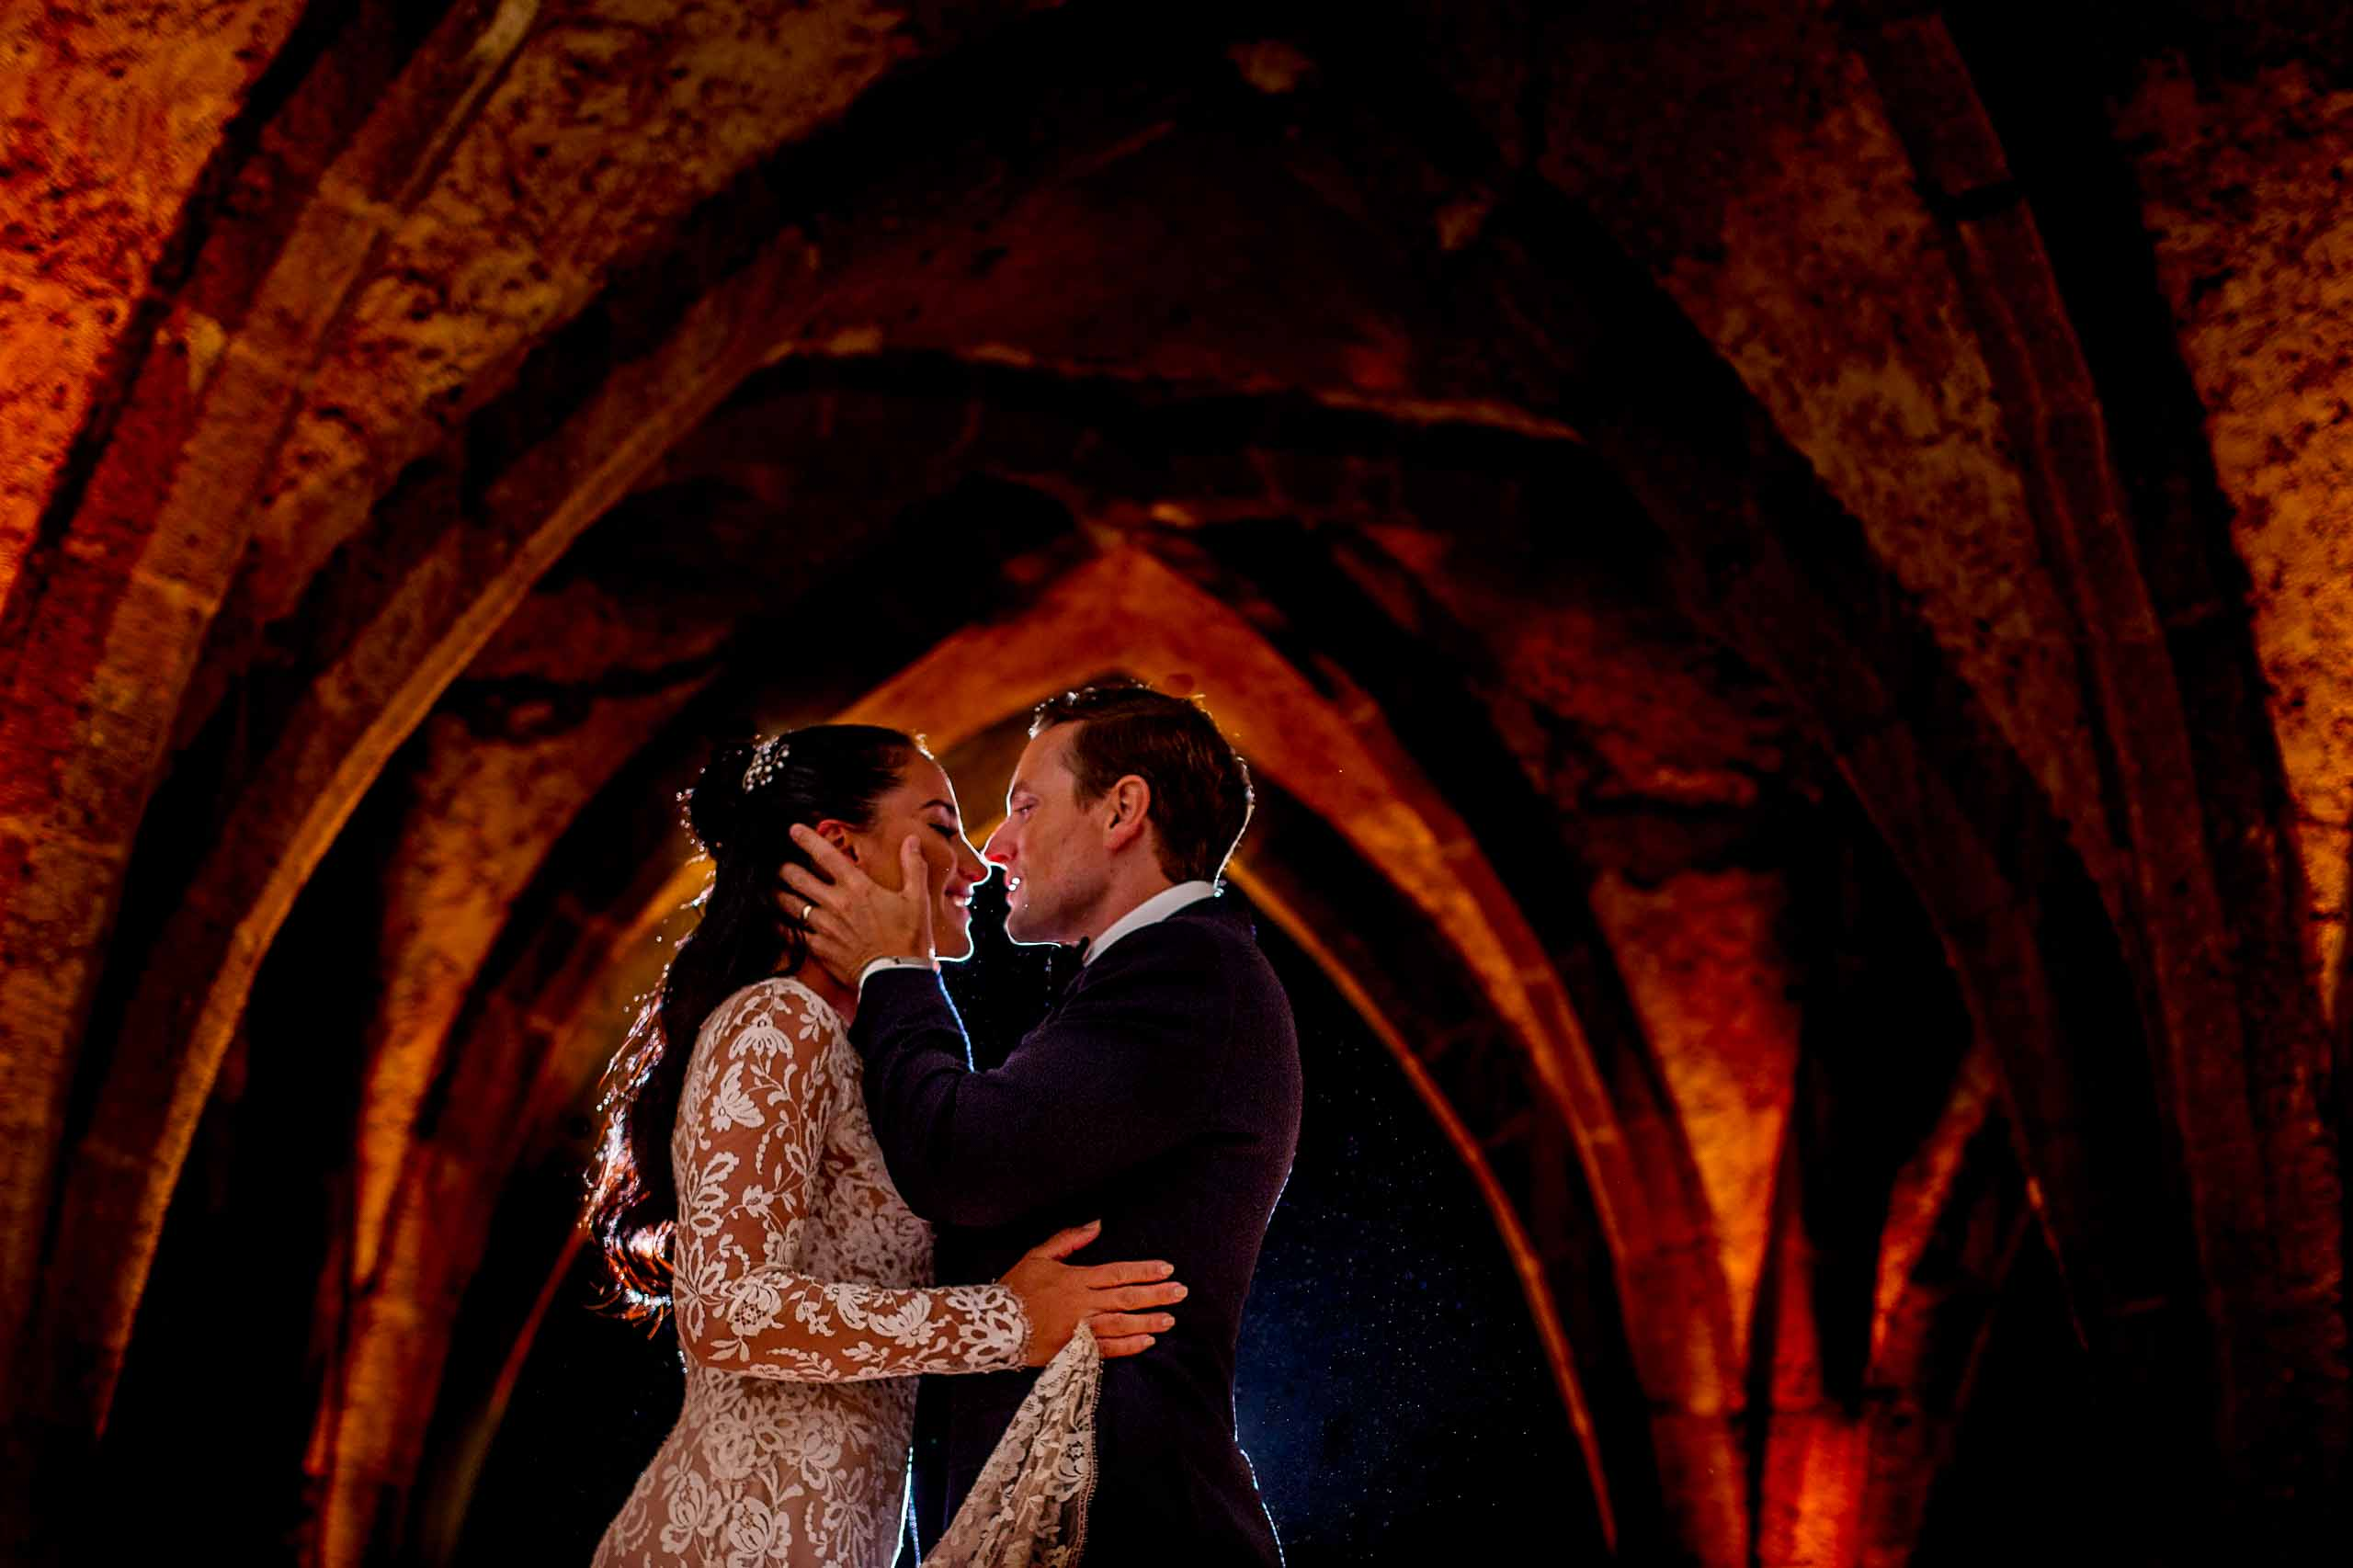 Beautiful bride and groom photo at Villa Cimbrone in the crypt for their Ravello elopement along the Amalfi coast in Italy.